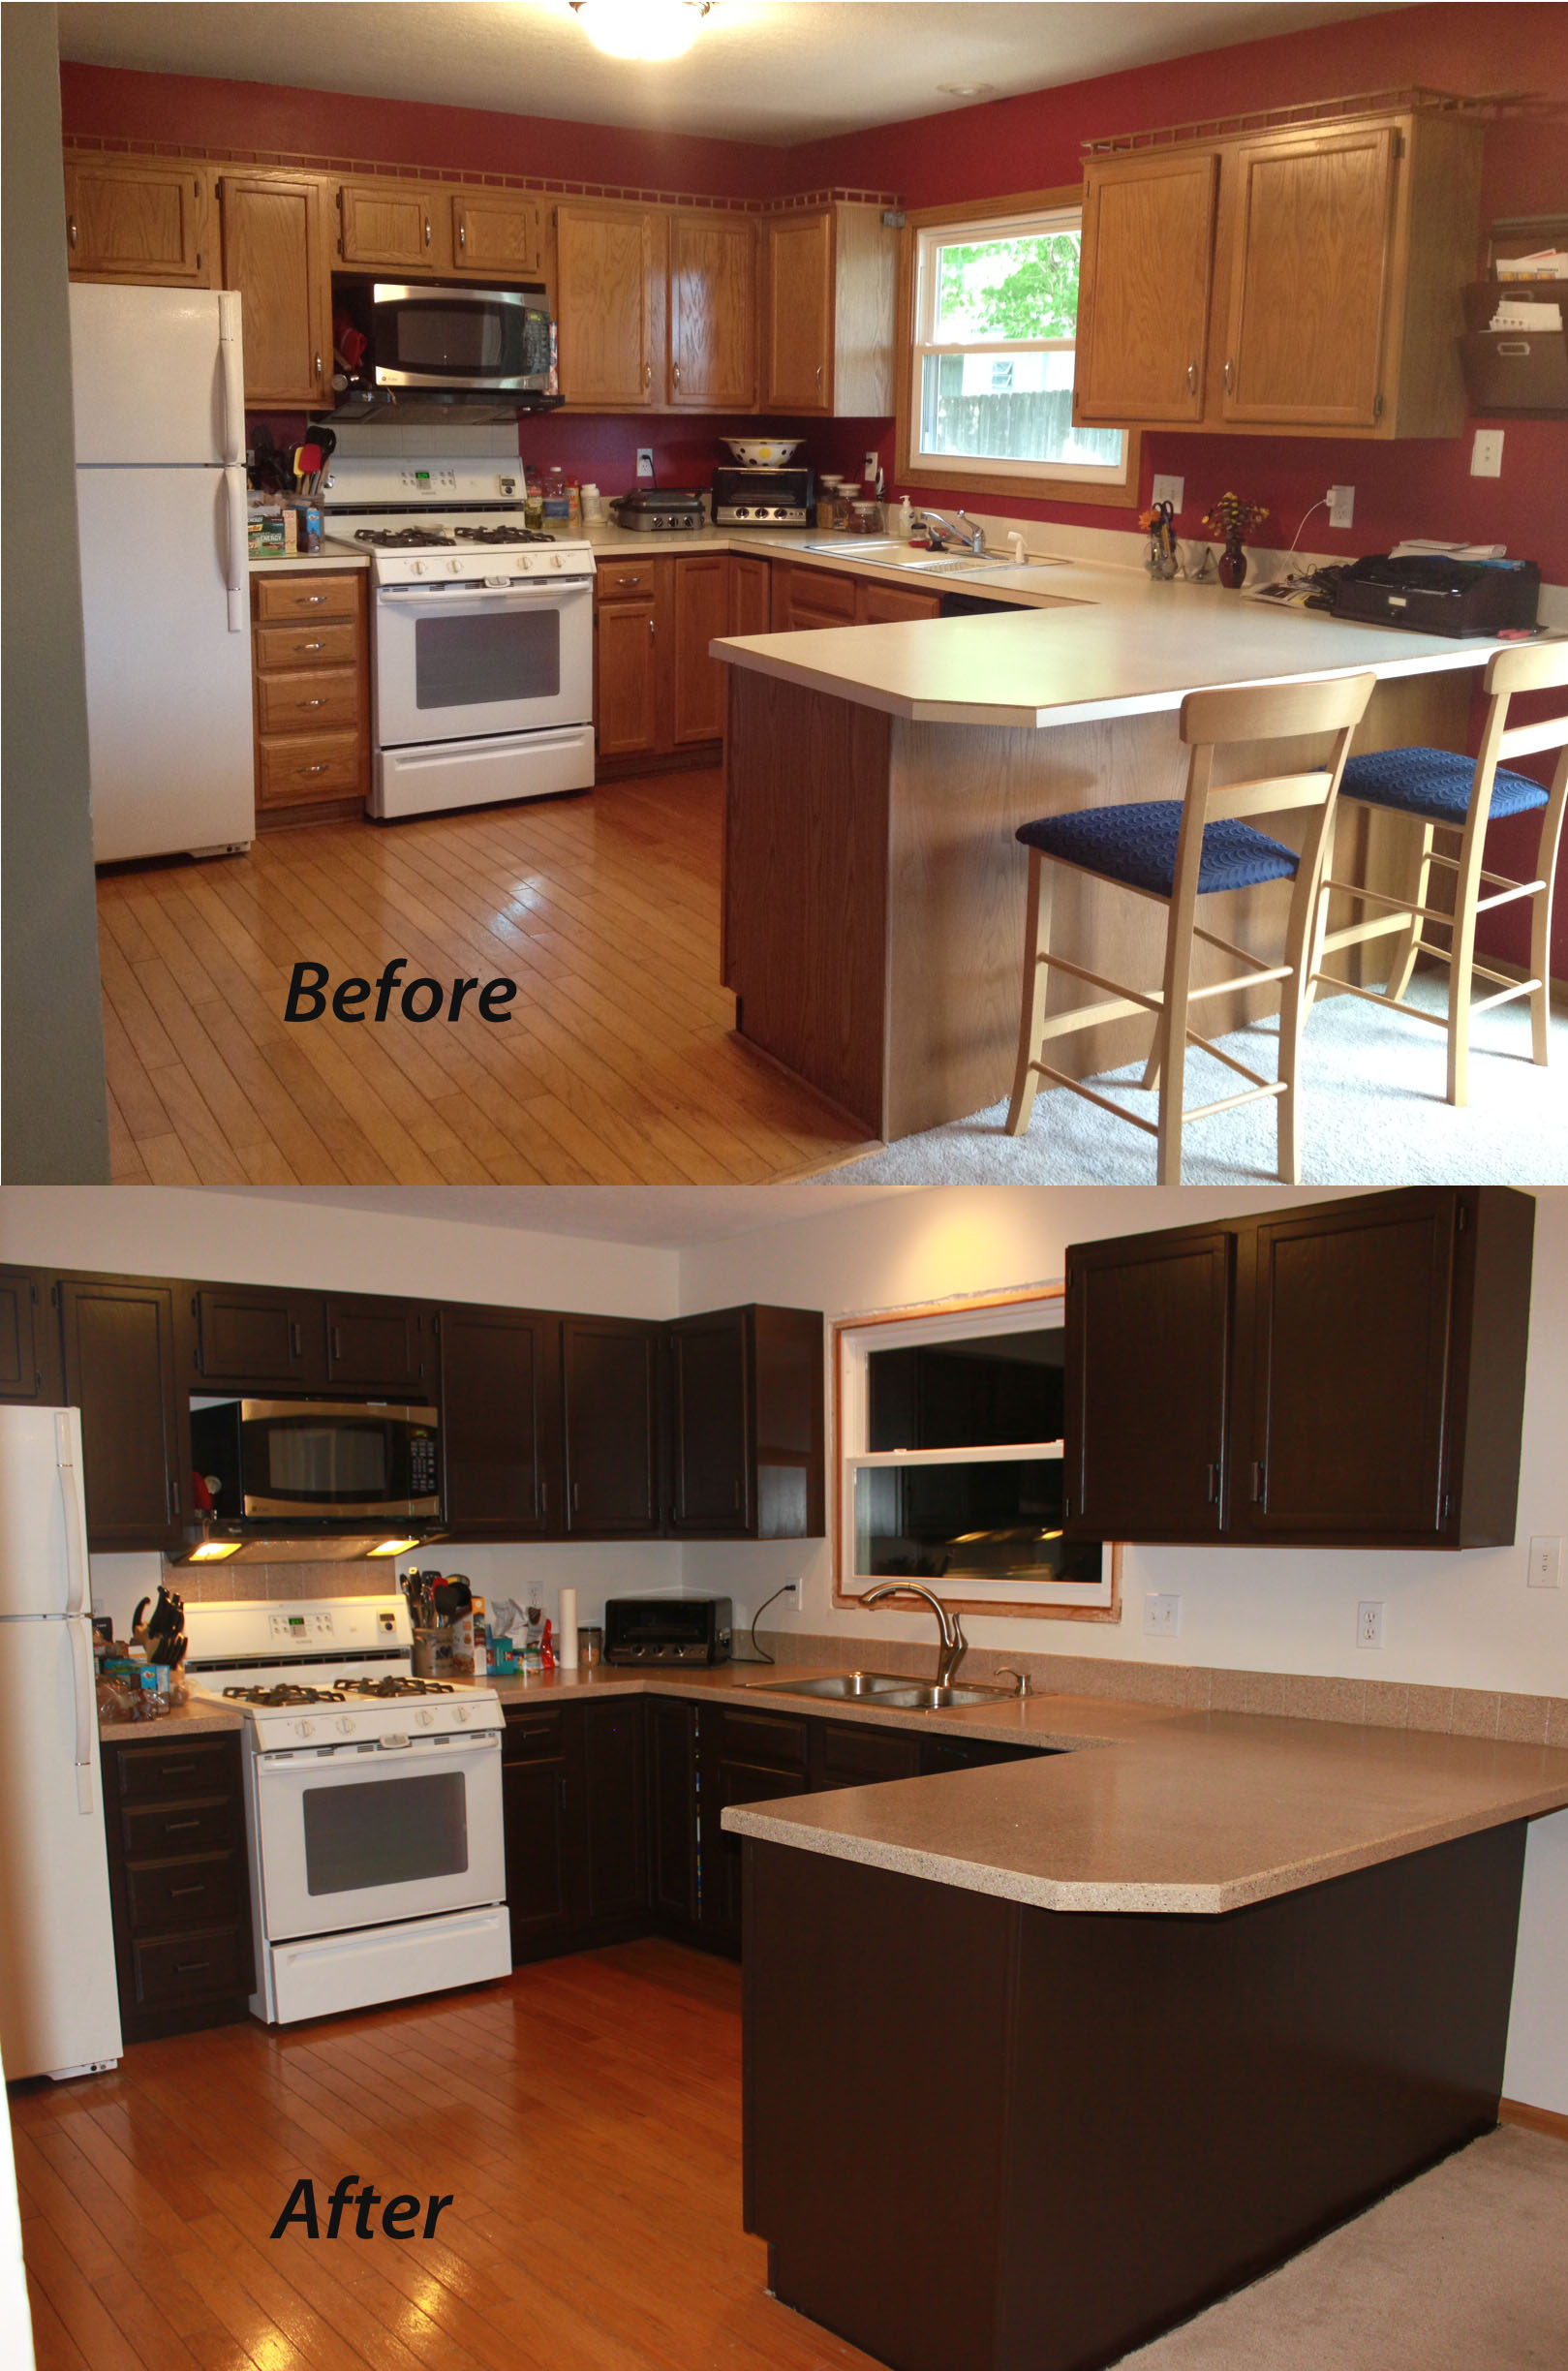 Staining Oak Cabinets Espresso Painting Kitchen Cabinets Sometimes Homemade